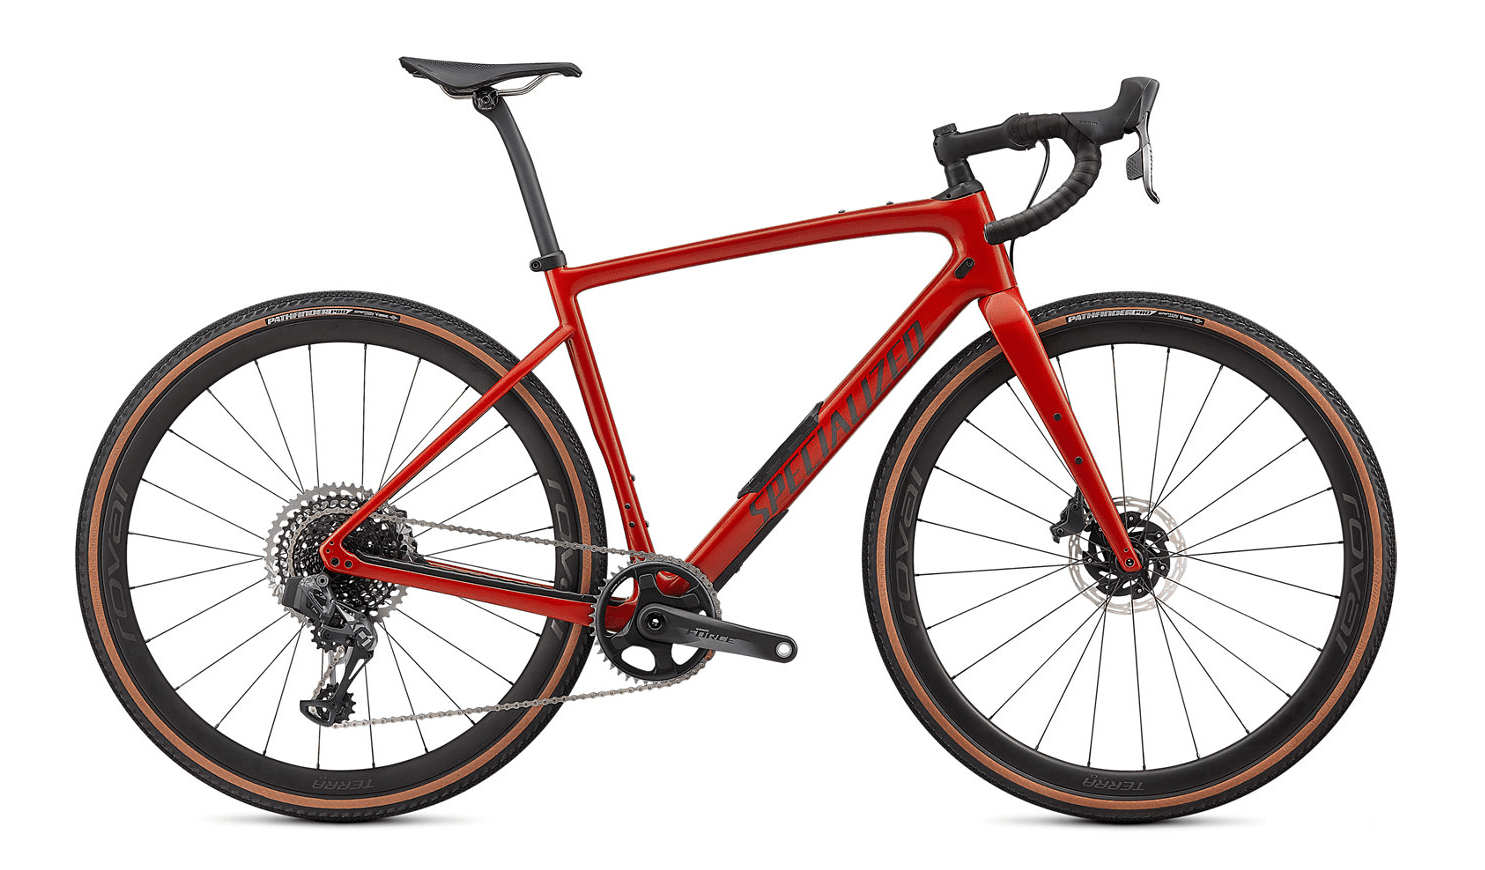 Specialized Diverge Pro Carbon 2021 Frontansicht in der Farbe Gloss Redwood/Smoke/Chrome/Clean